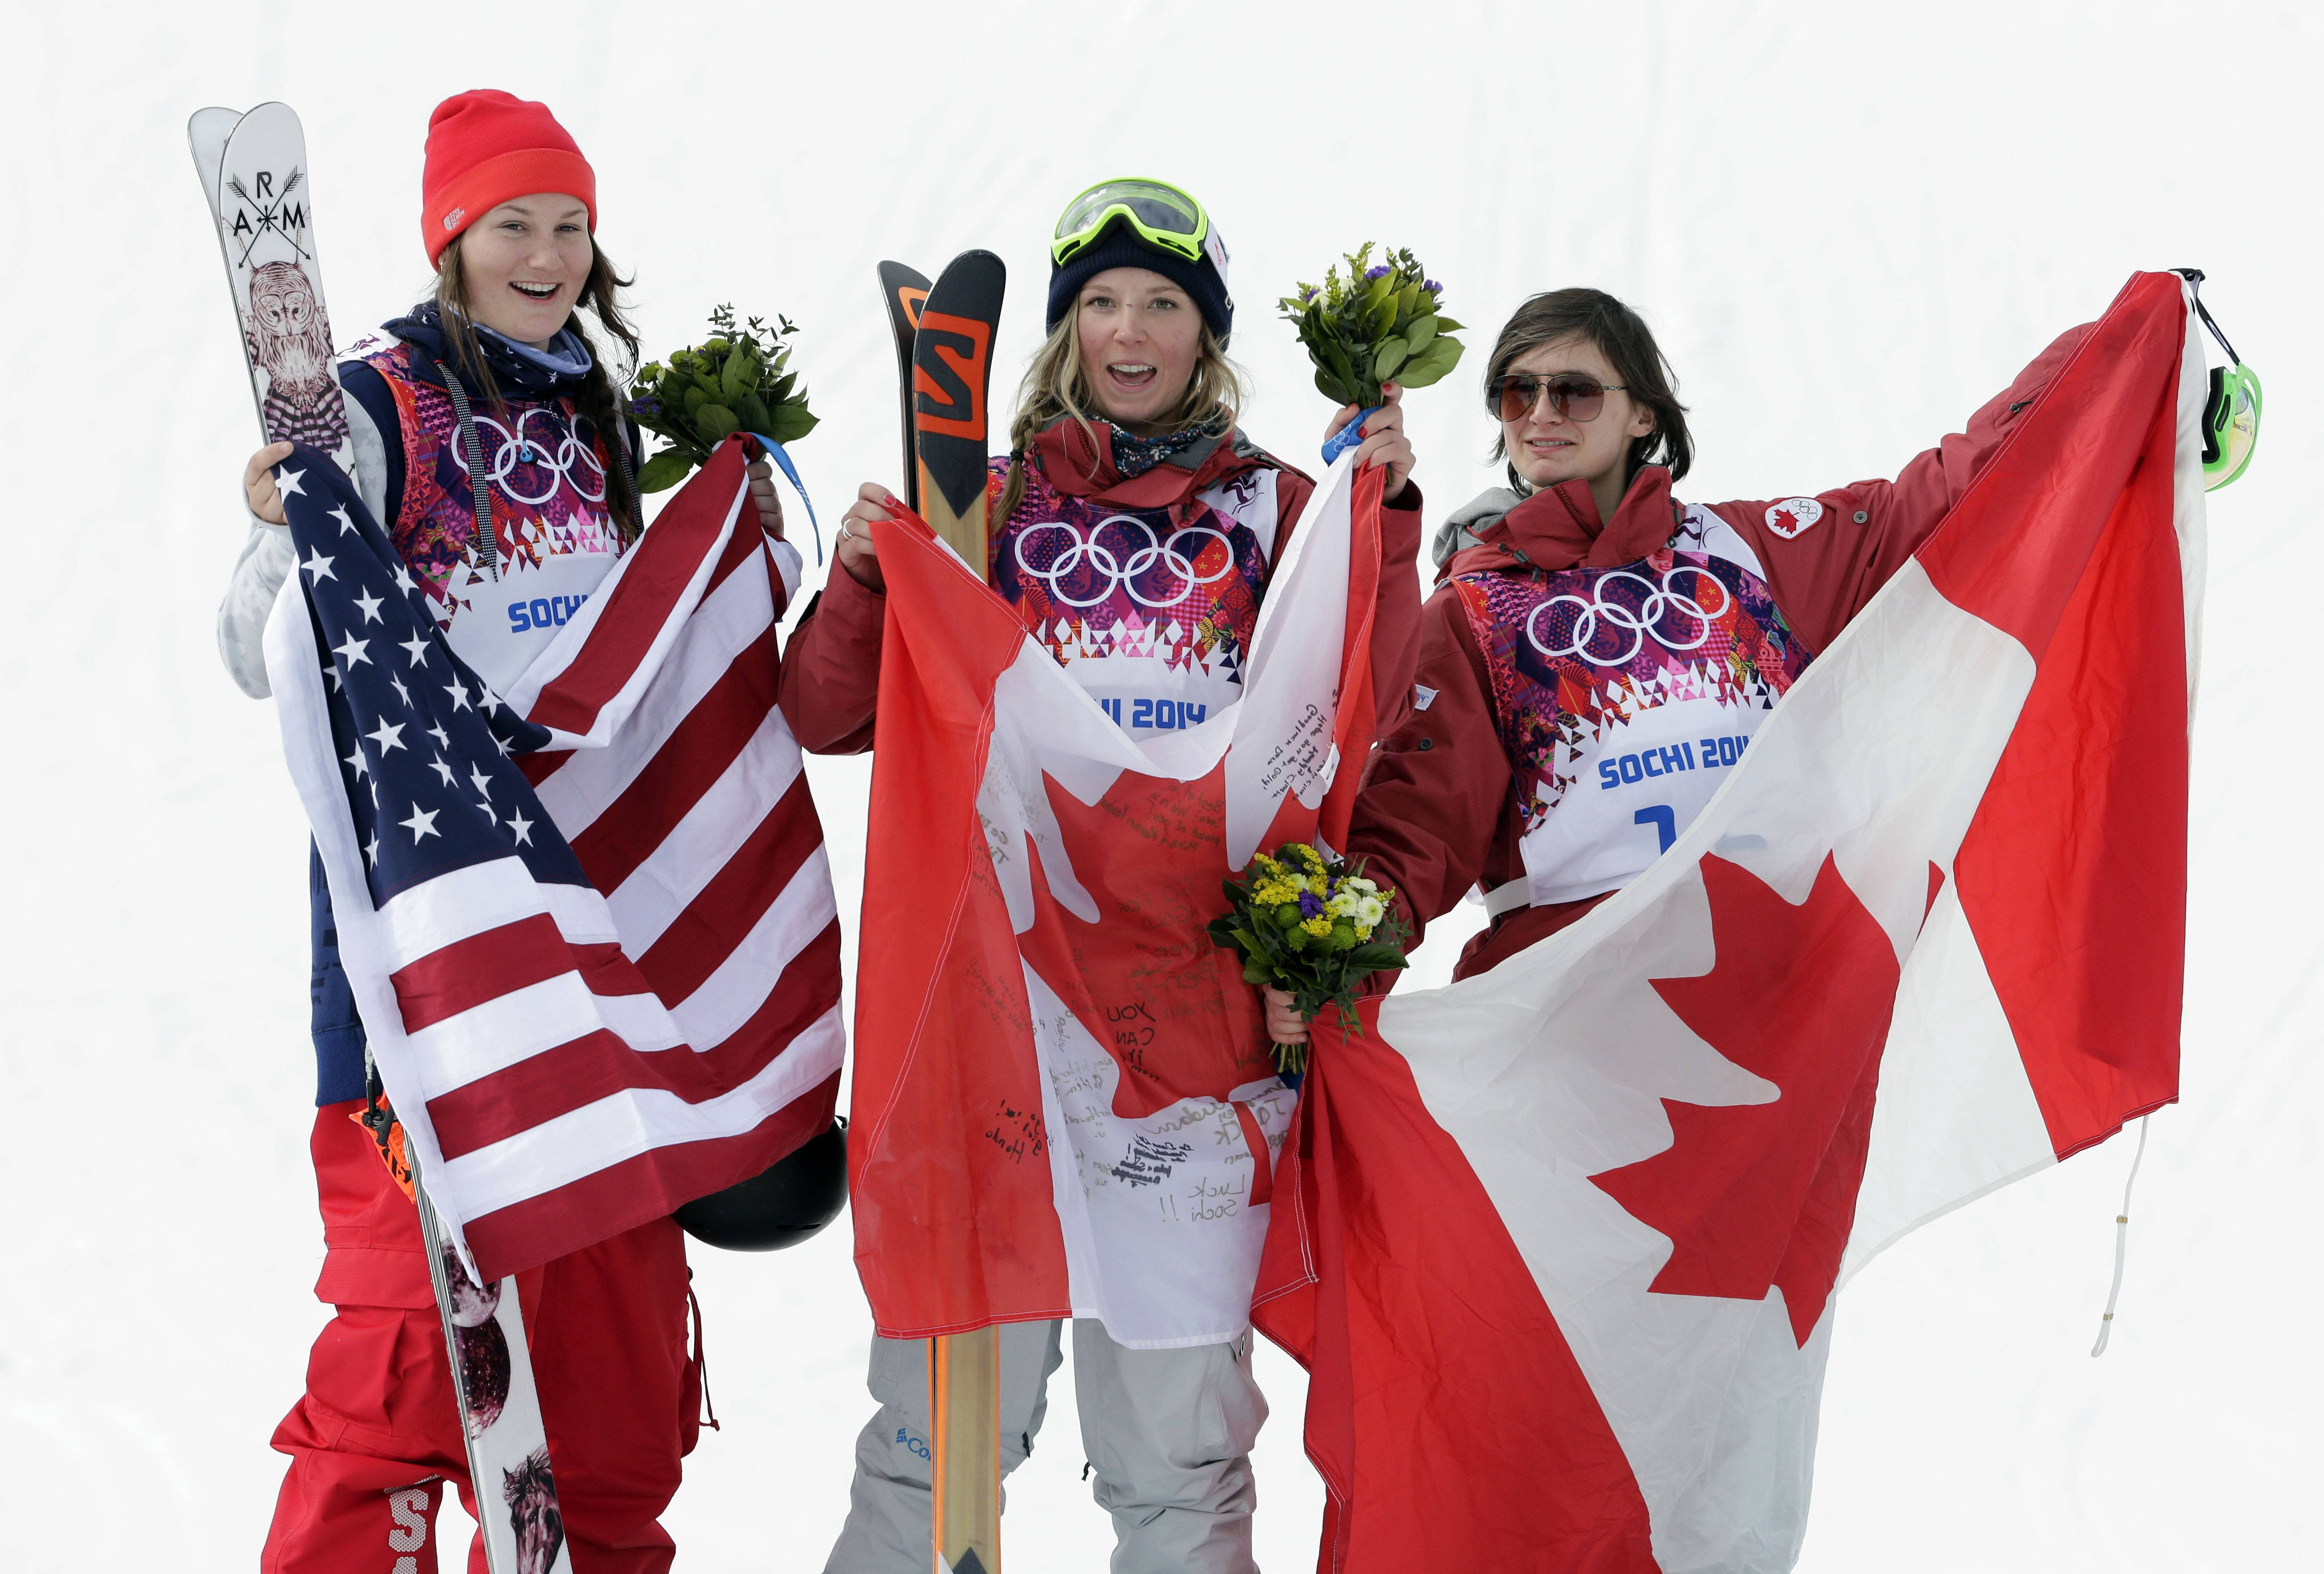 Canada's Dara Howell, center, celebrates on the podium with silver medalist Devin Logan of the United States, left, and Kim Lamarre, right,  also of Canada, after Howell took the gold medal in the women's freestyle skiing slopestyle final.